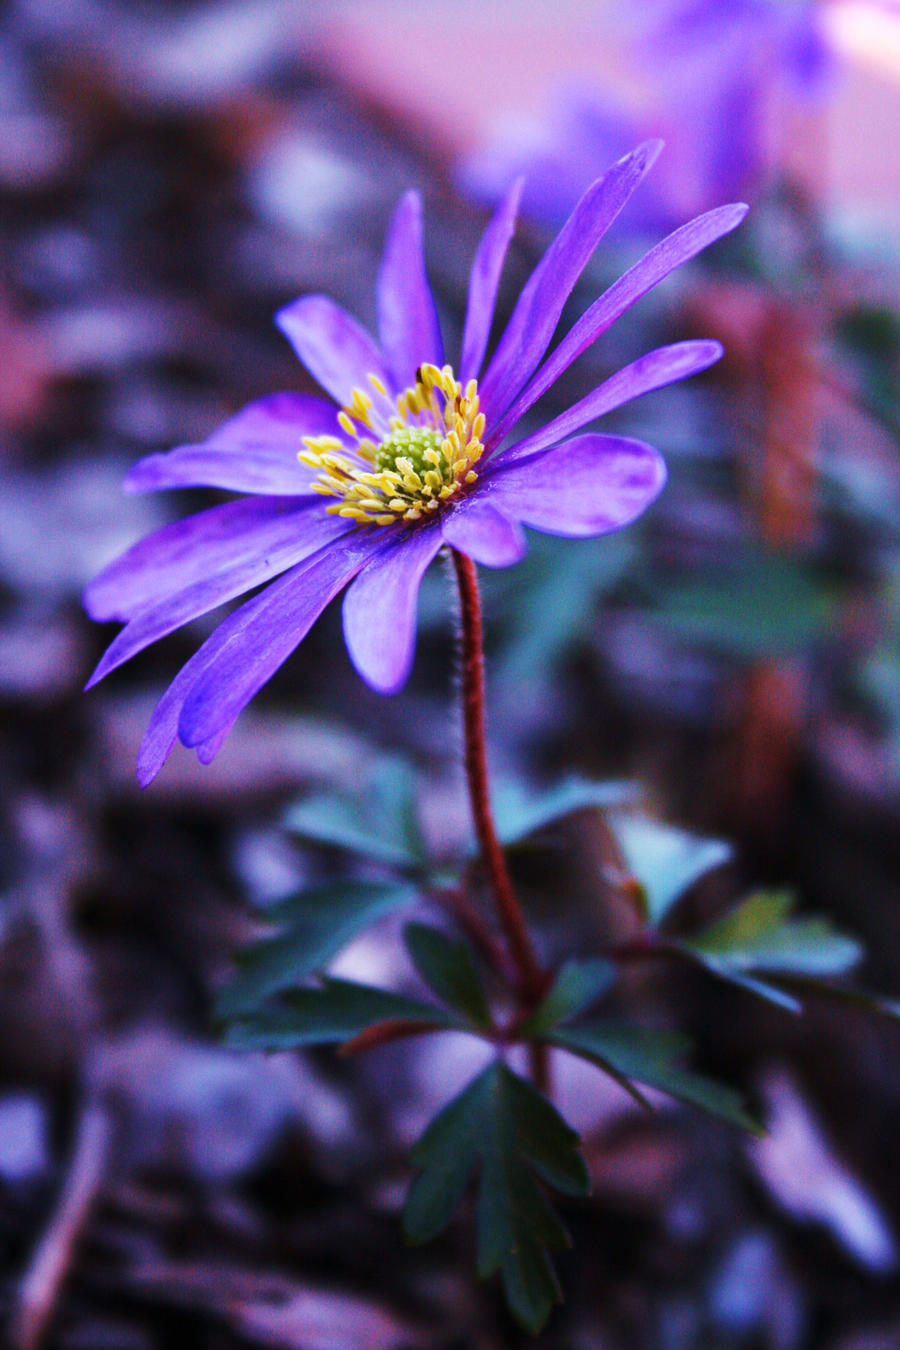 Simply A Small Flower by kErstinR